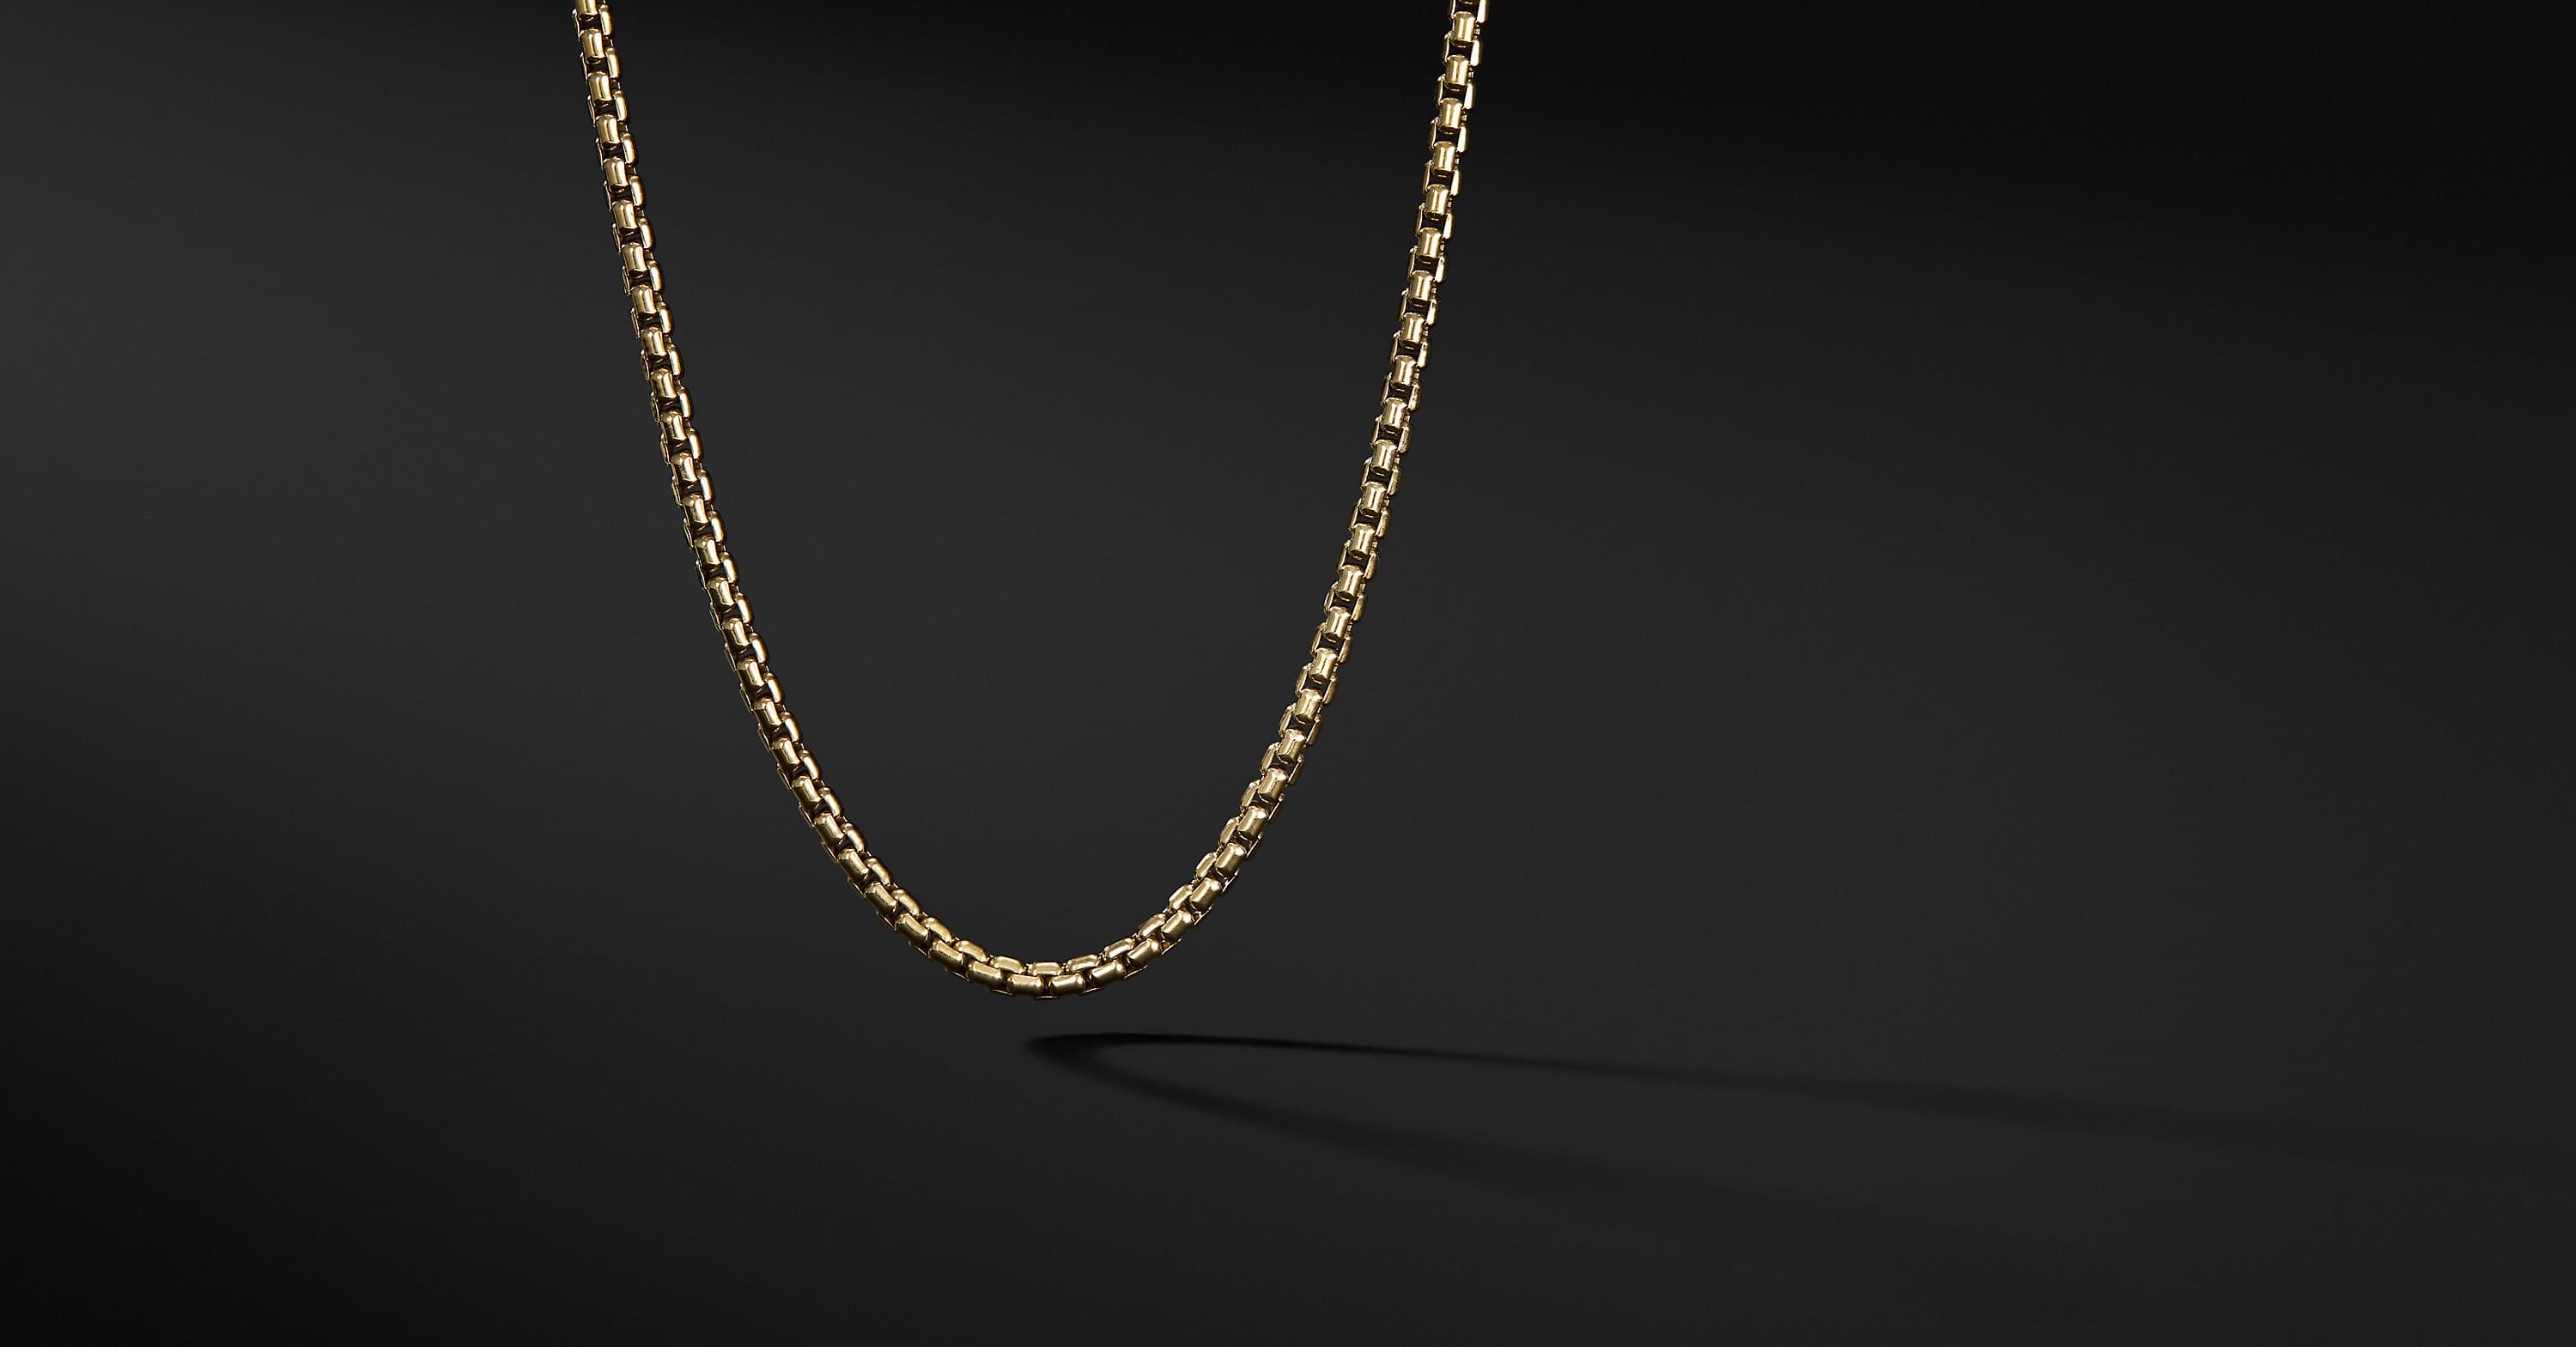 Medium Box Chain Necklace in 18K Gold, 3.4mm